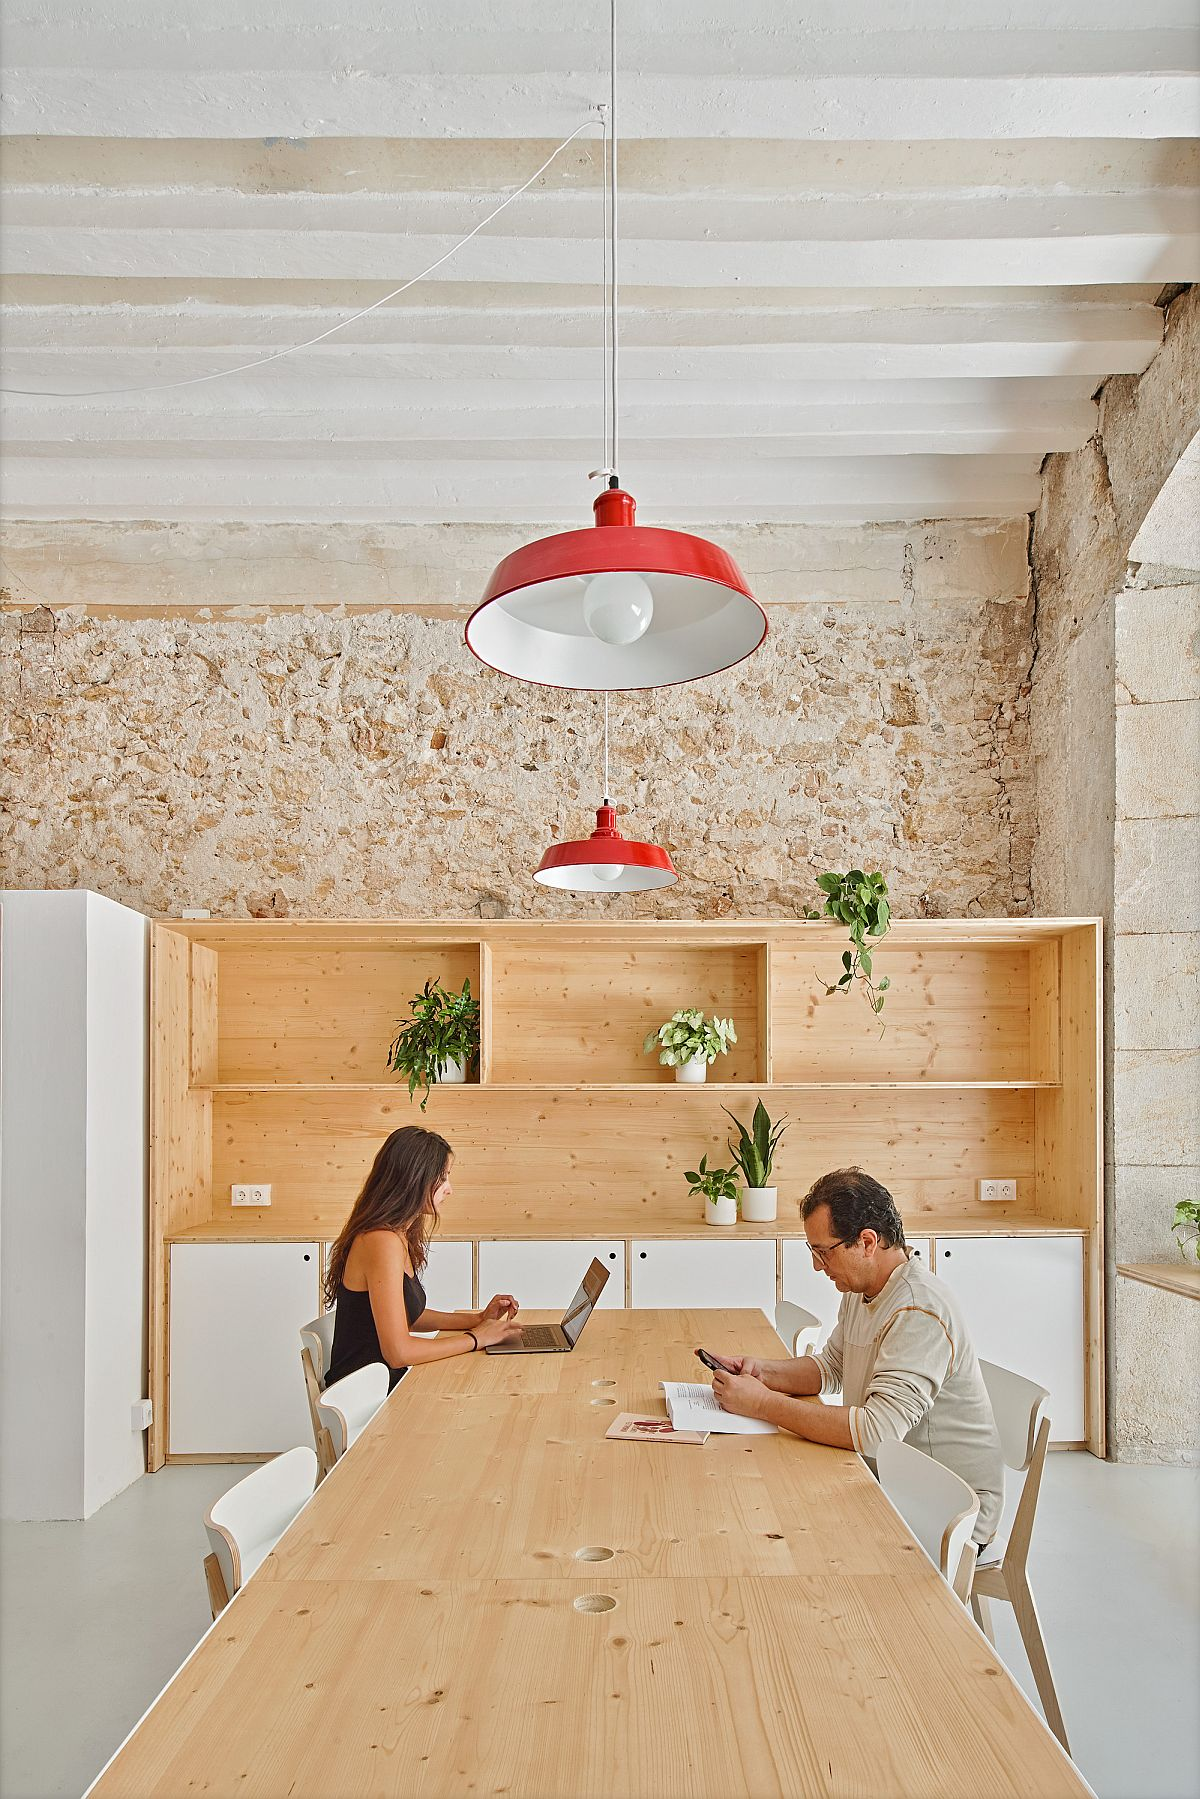 Pendant lights in red add color to the fabulous interior in brick white